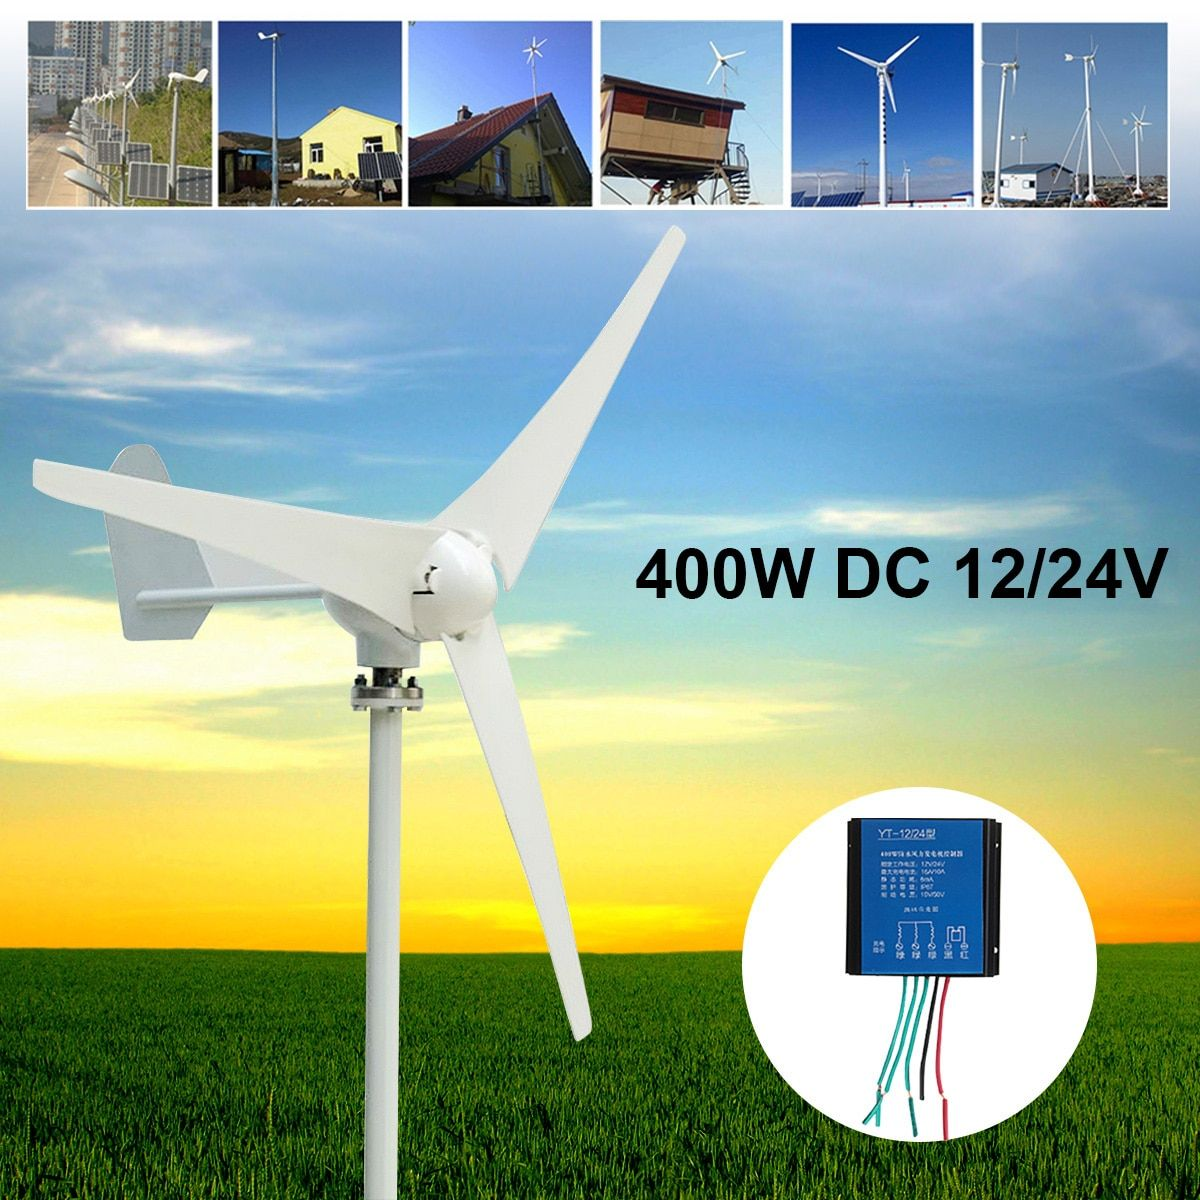 Max 500W Wind Turbine Generator DC 12V 24V 3/5 Blade Power Supply + Charge Controller